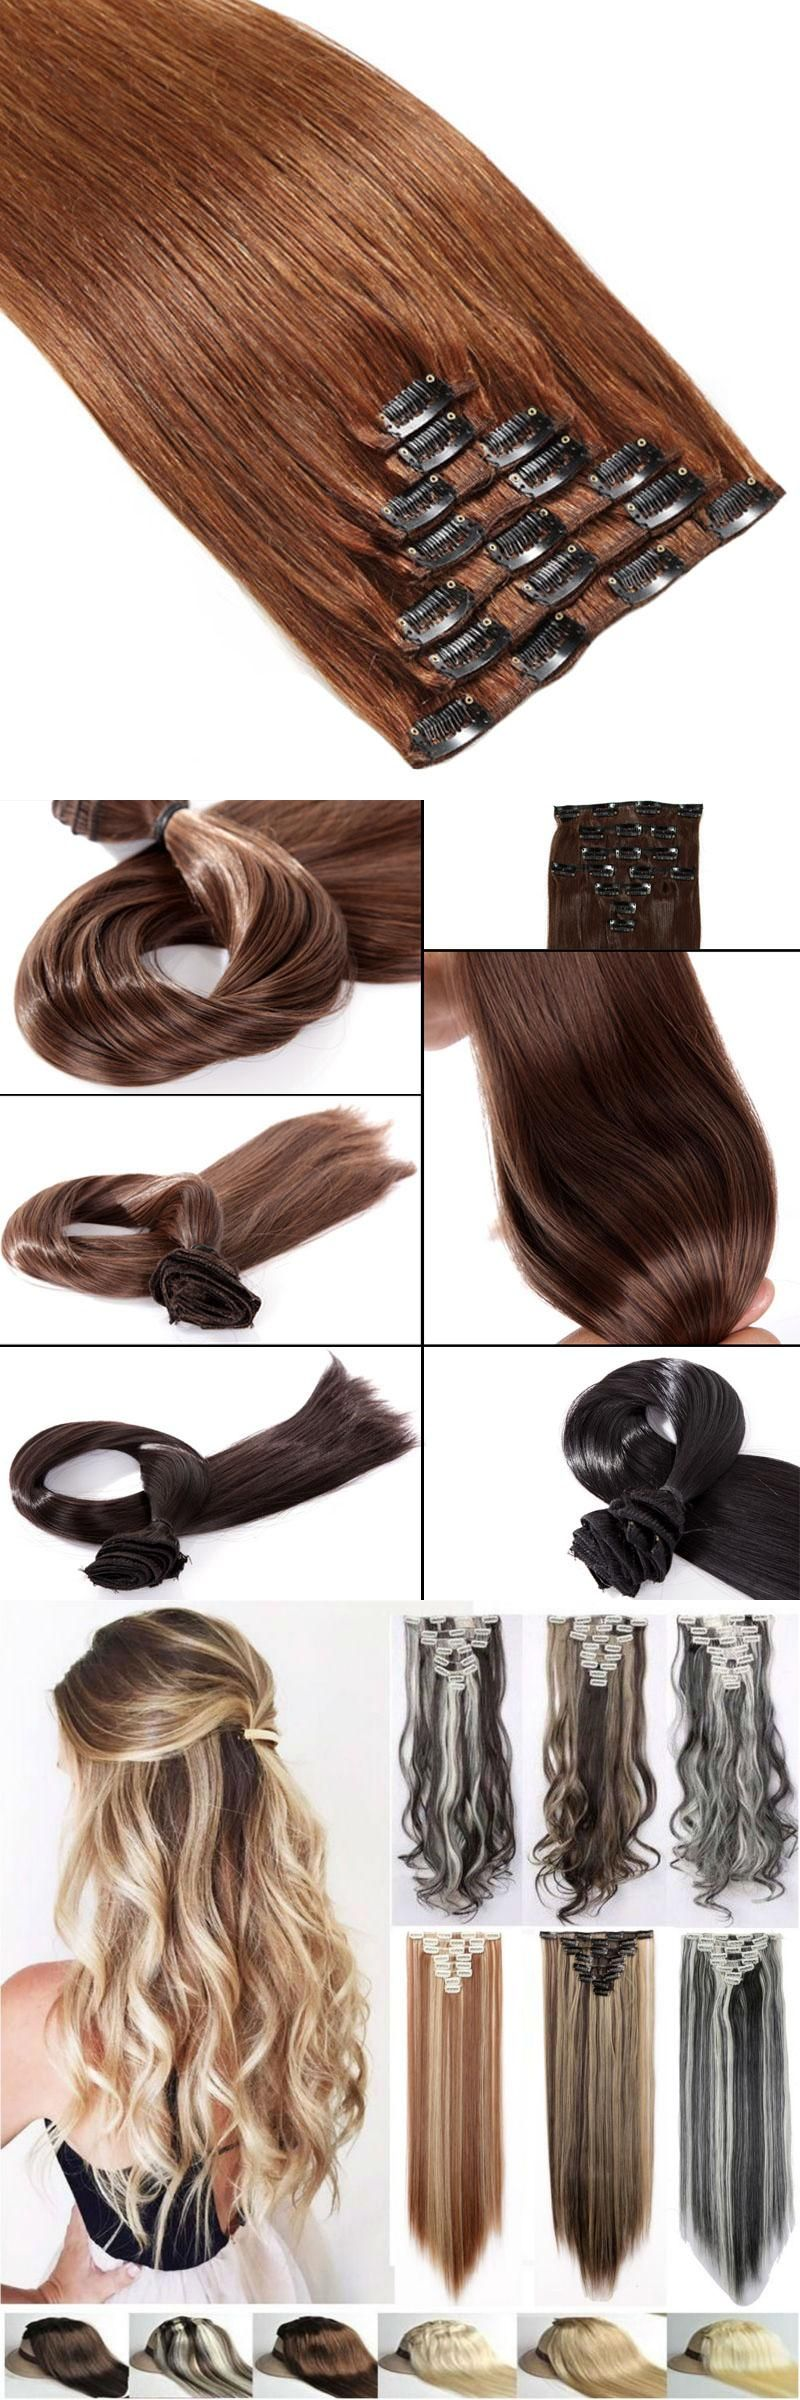 Snoilite Ash Blonde Hairpiece 23inch 170g Straight 18 Clips In False